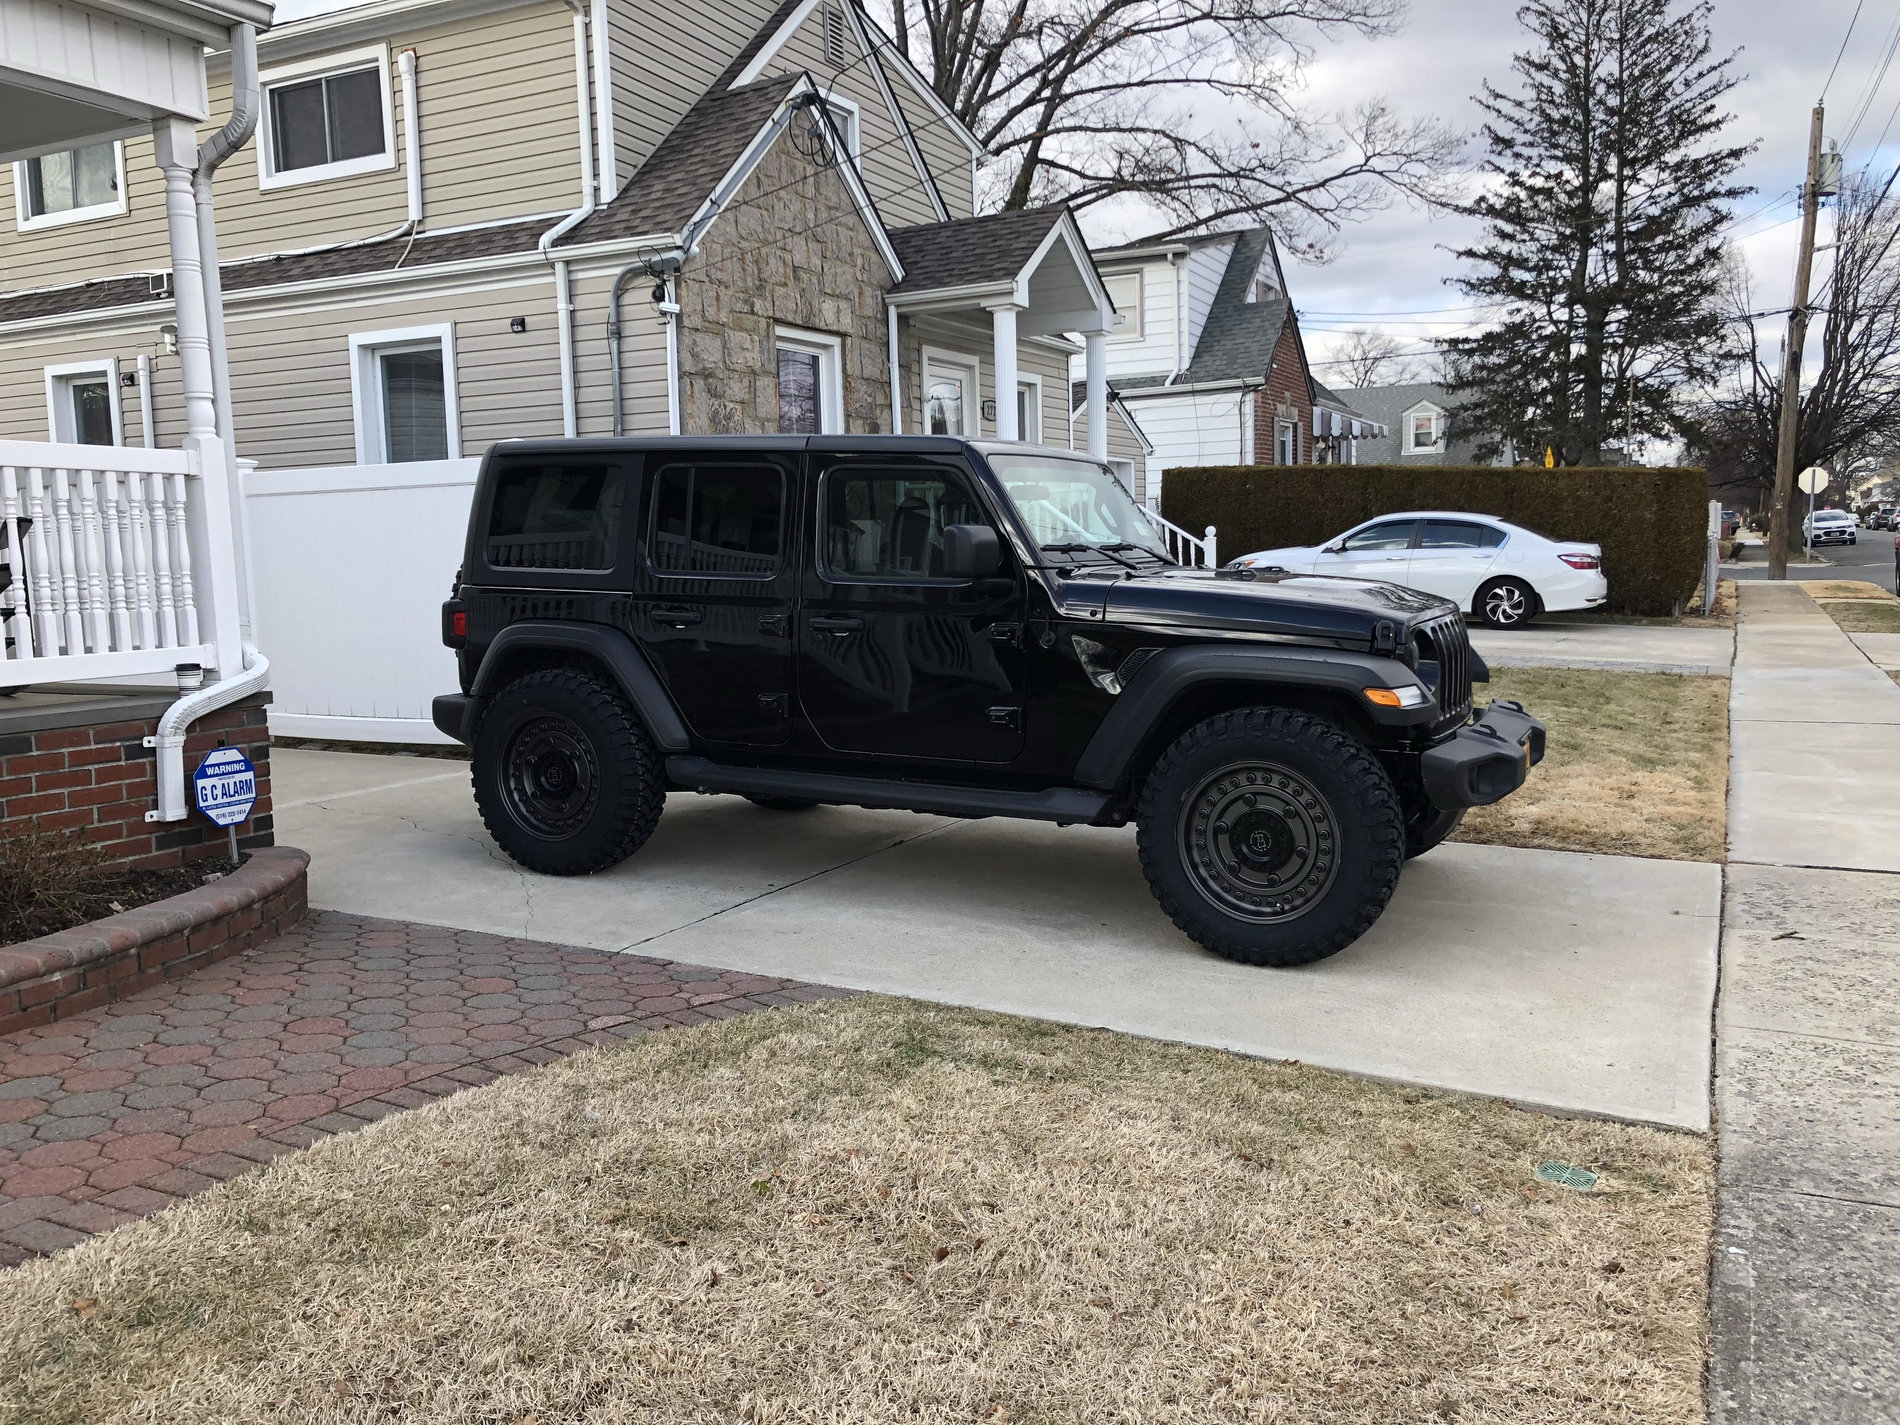 Jl Sports S 35 Inch Tires No Lift 2018 Jeep Wrangler Forums Jl